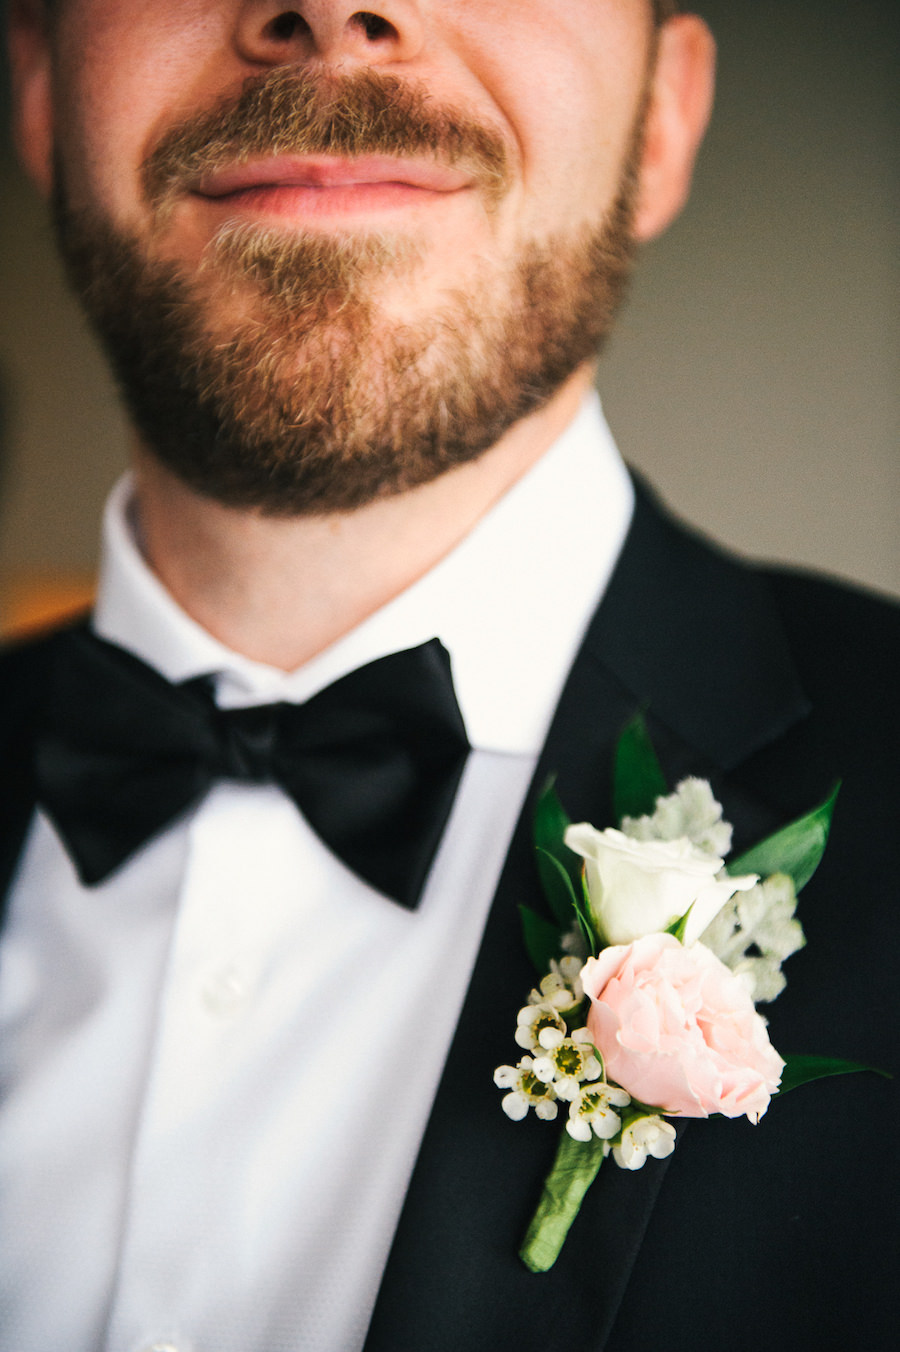 Groom in Black Tuxedo with Black Bowtie wearing Blush Pink and Ivory Wedding Boutonniere